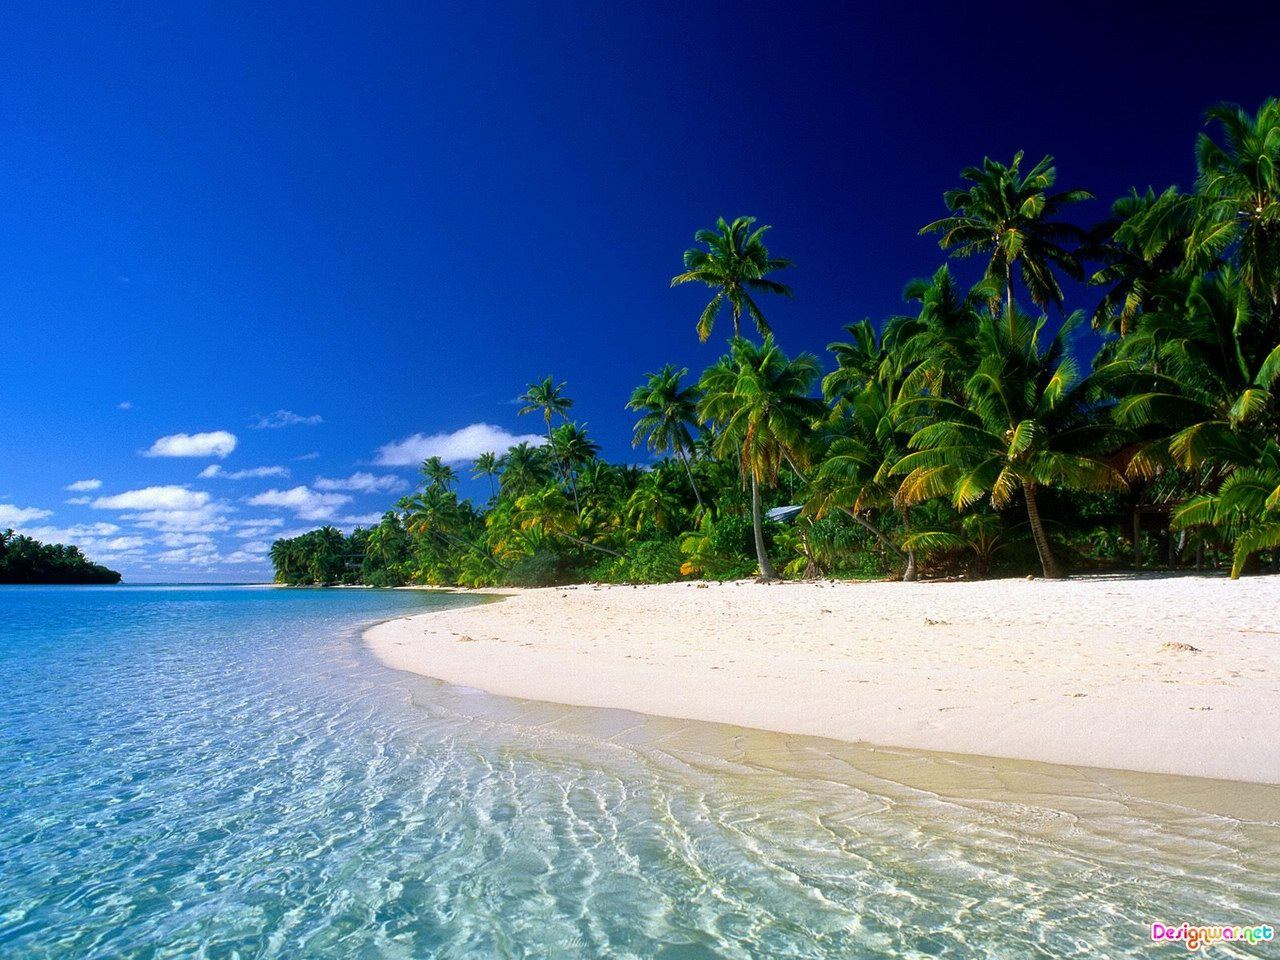 http://3.bp.blogspot.com/_9g1xXeNqBDQ/TKEDqH67INI/AAAAAAAAUSo/IBoX4e9HoQ8/s1600/beautiful_tropical_beach-14711.jpg